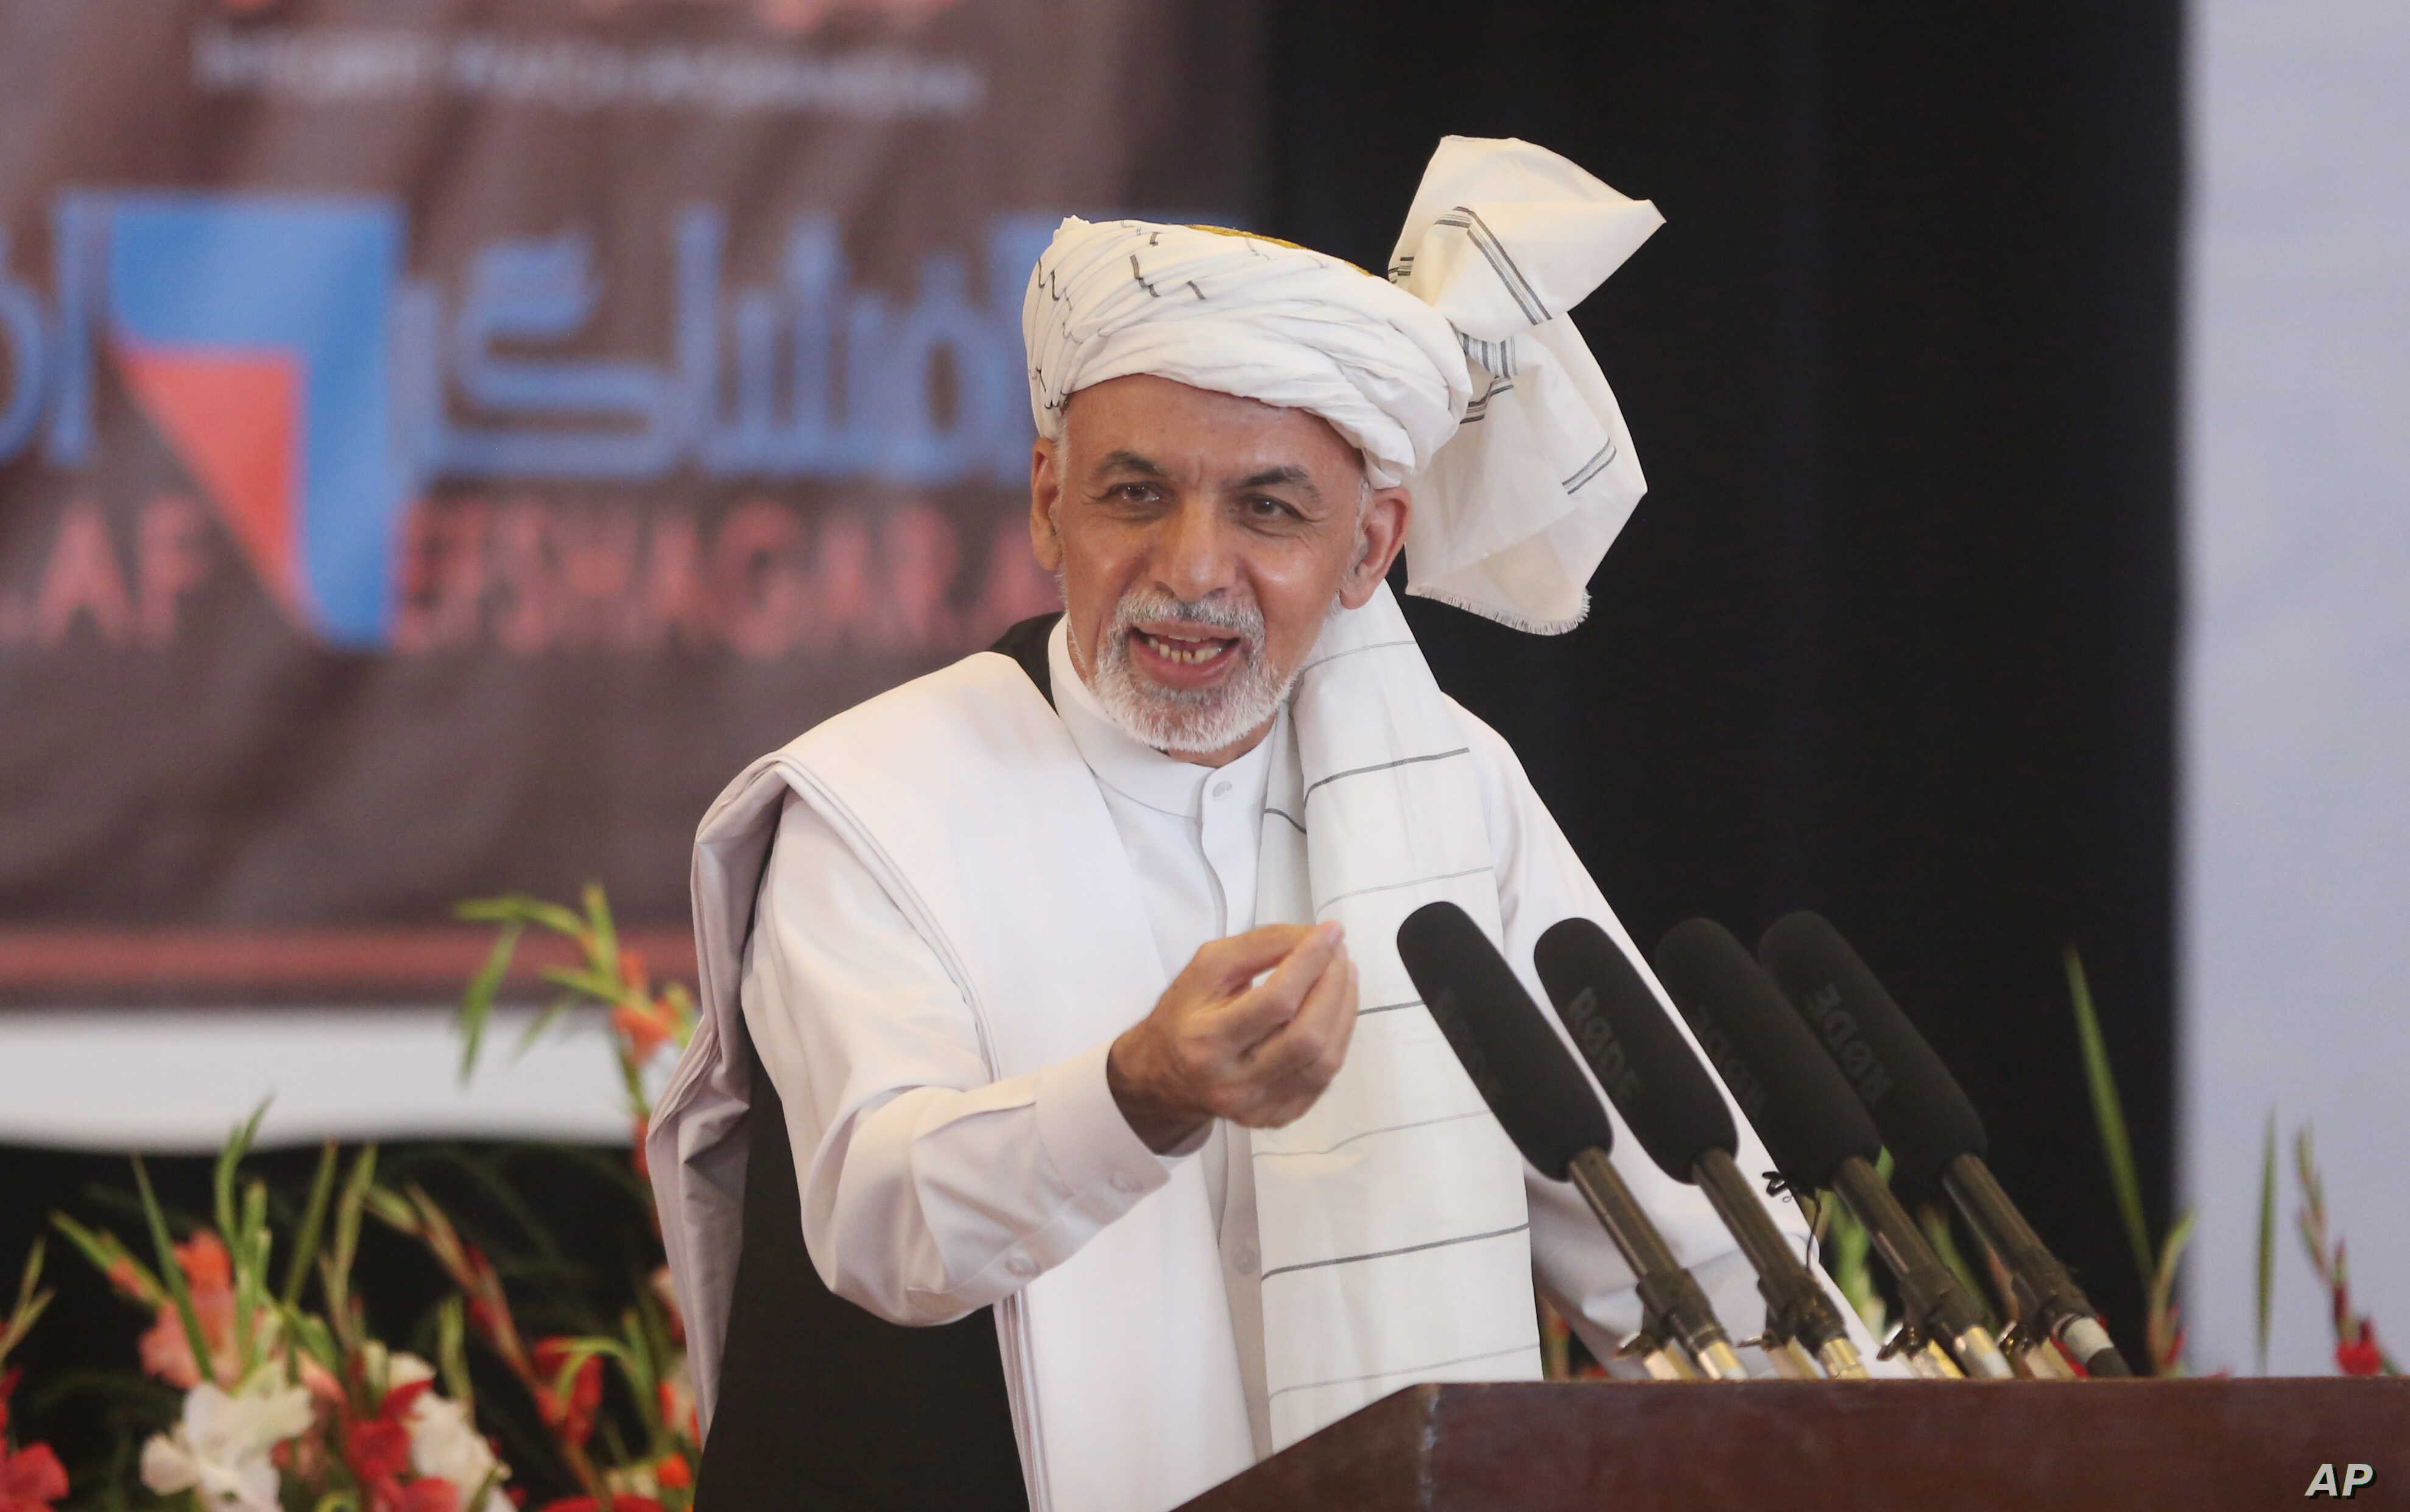 Afghanistan's President Ashraf Ghani speaks to religious leaders during an anti-corruption conference at Amani high school in Kabul, Afghanistan, Sept. 1, 2015.